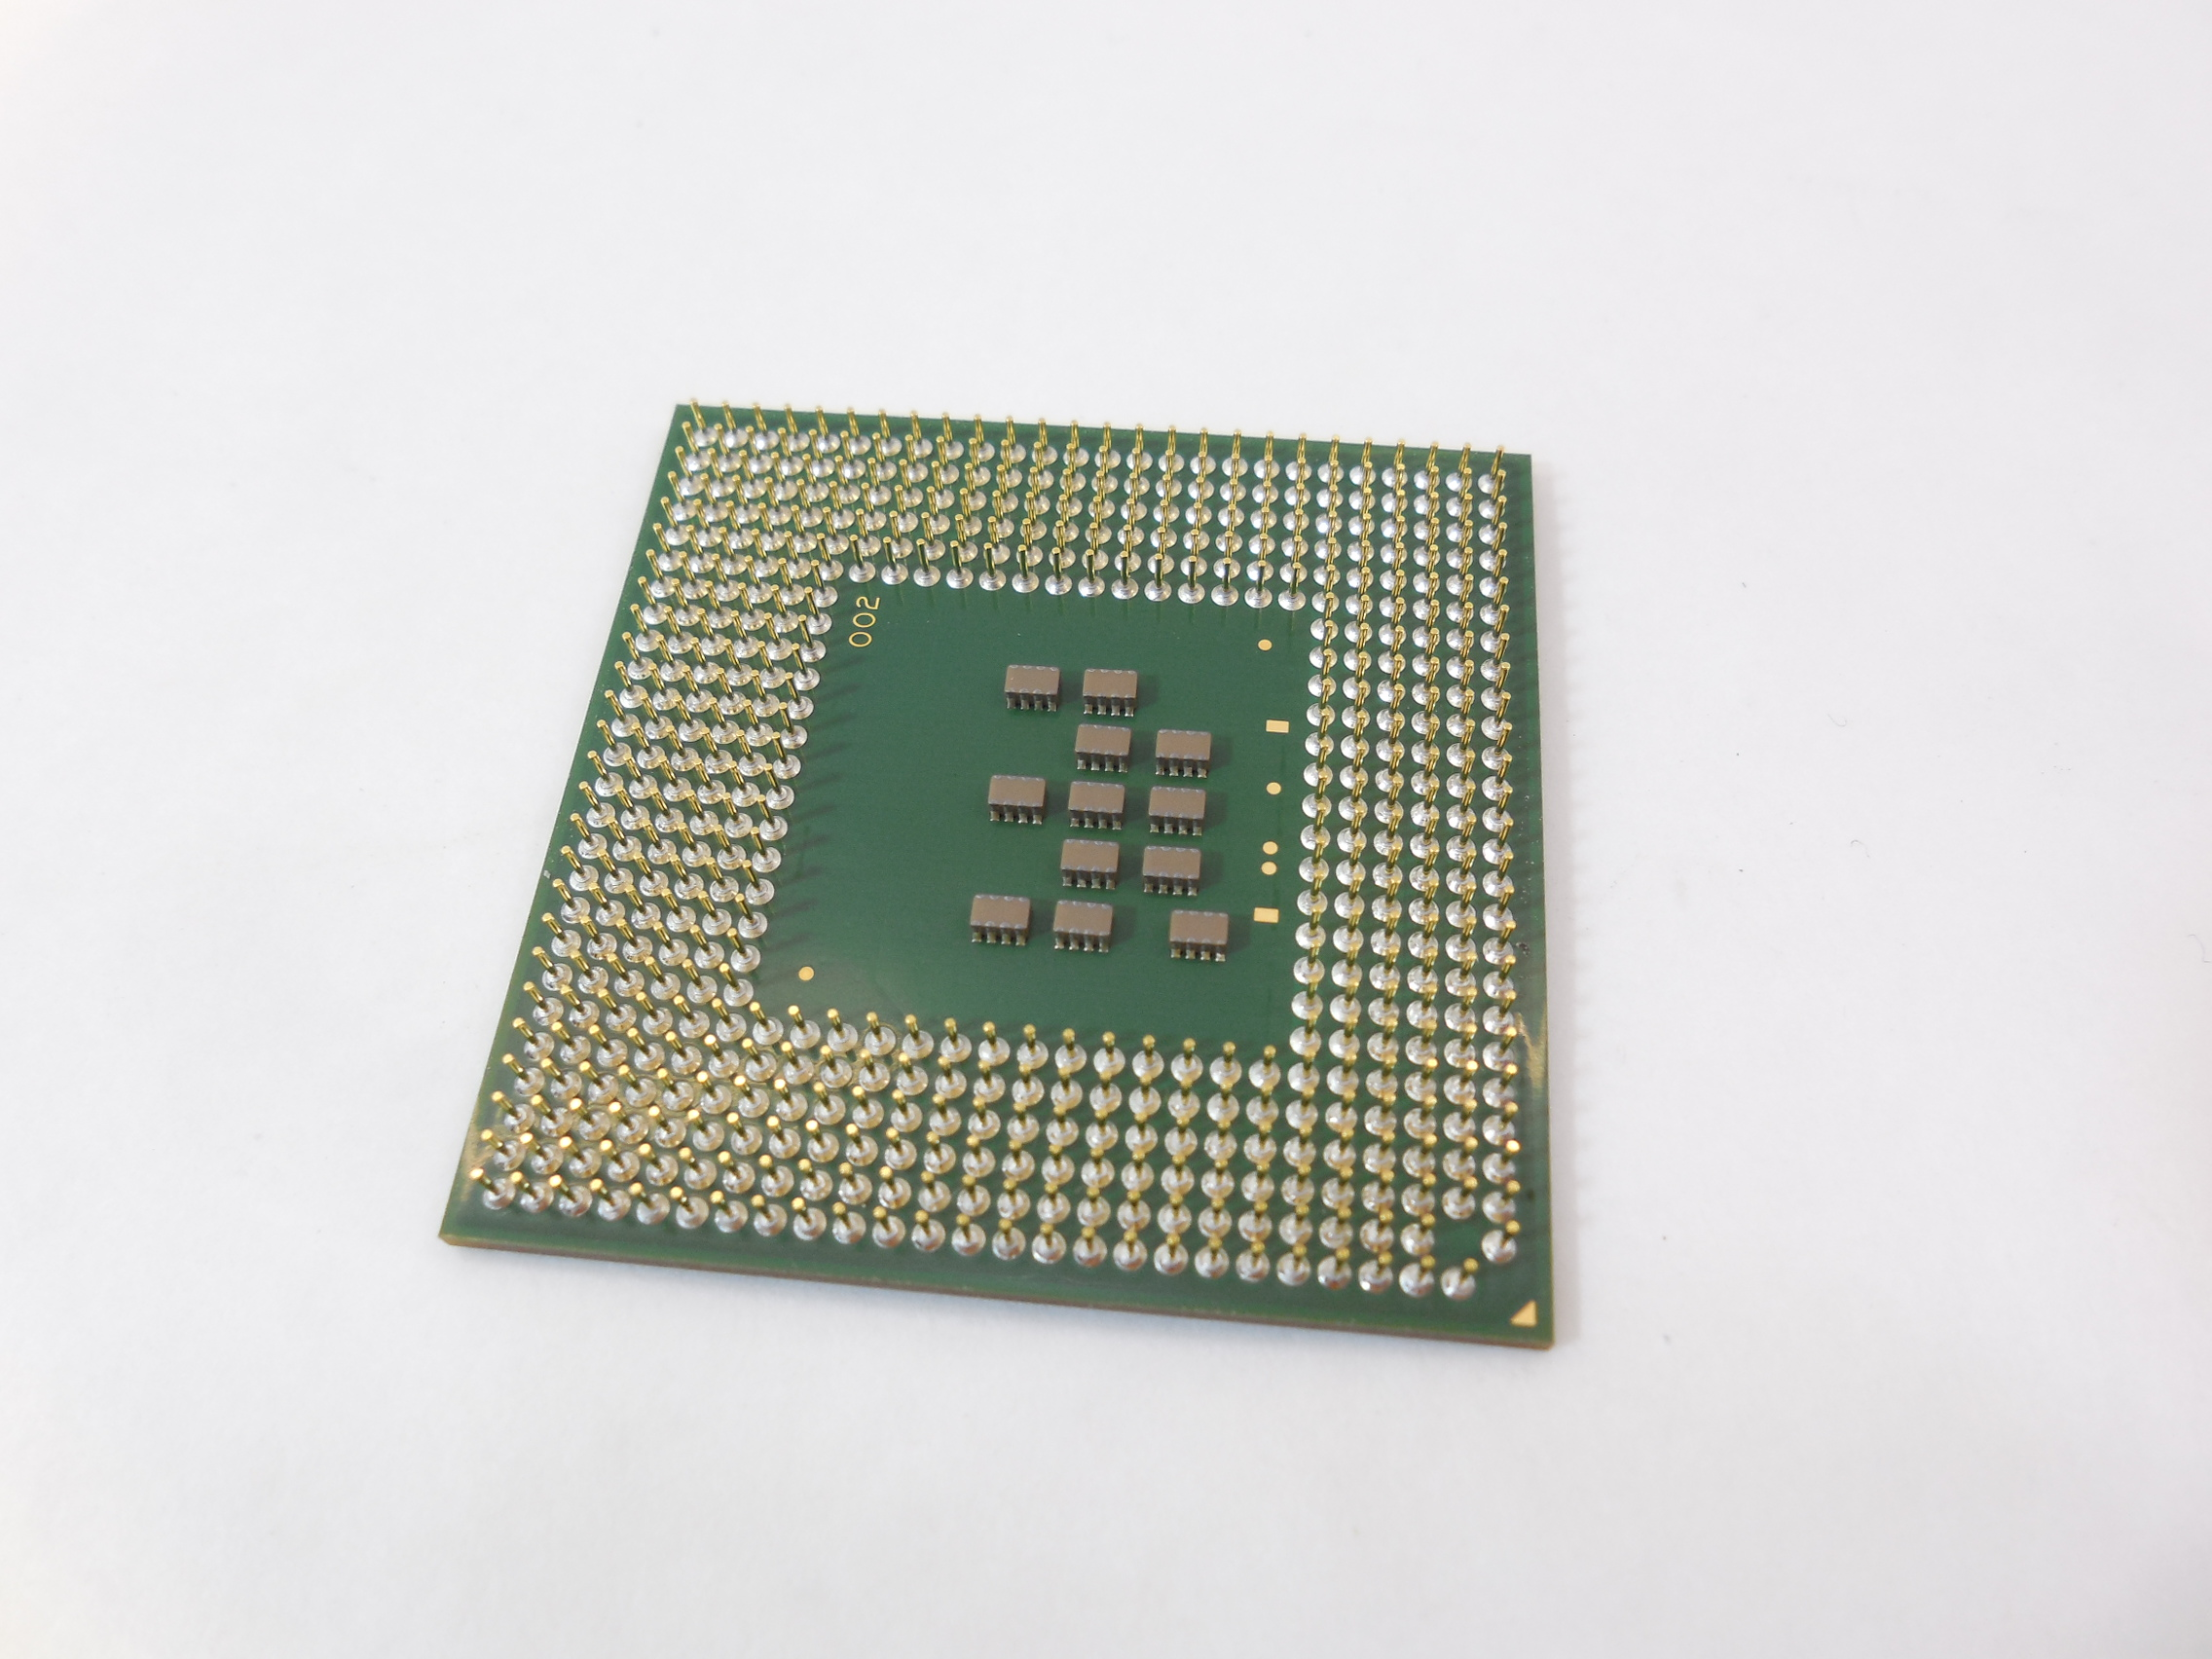 Процессор Socket 478 Intel Celeron M 380 (1.6GHz) - Pic n 276528